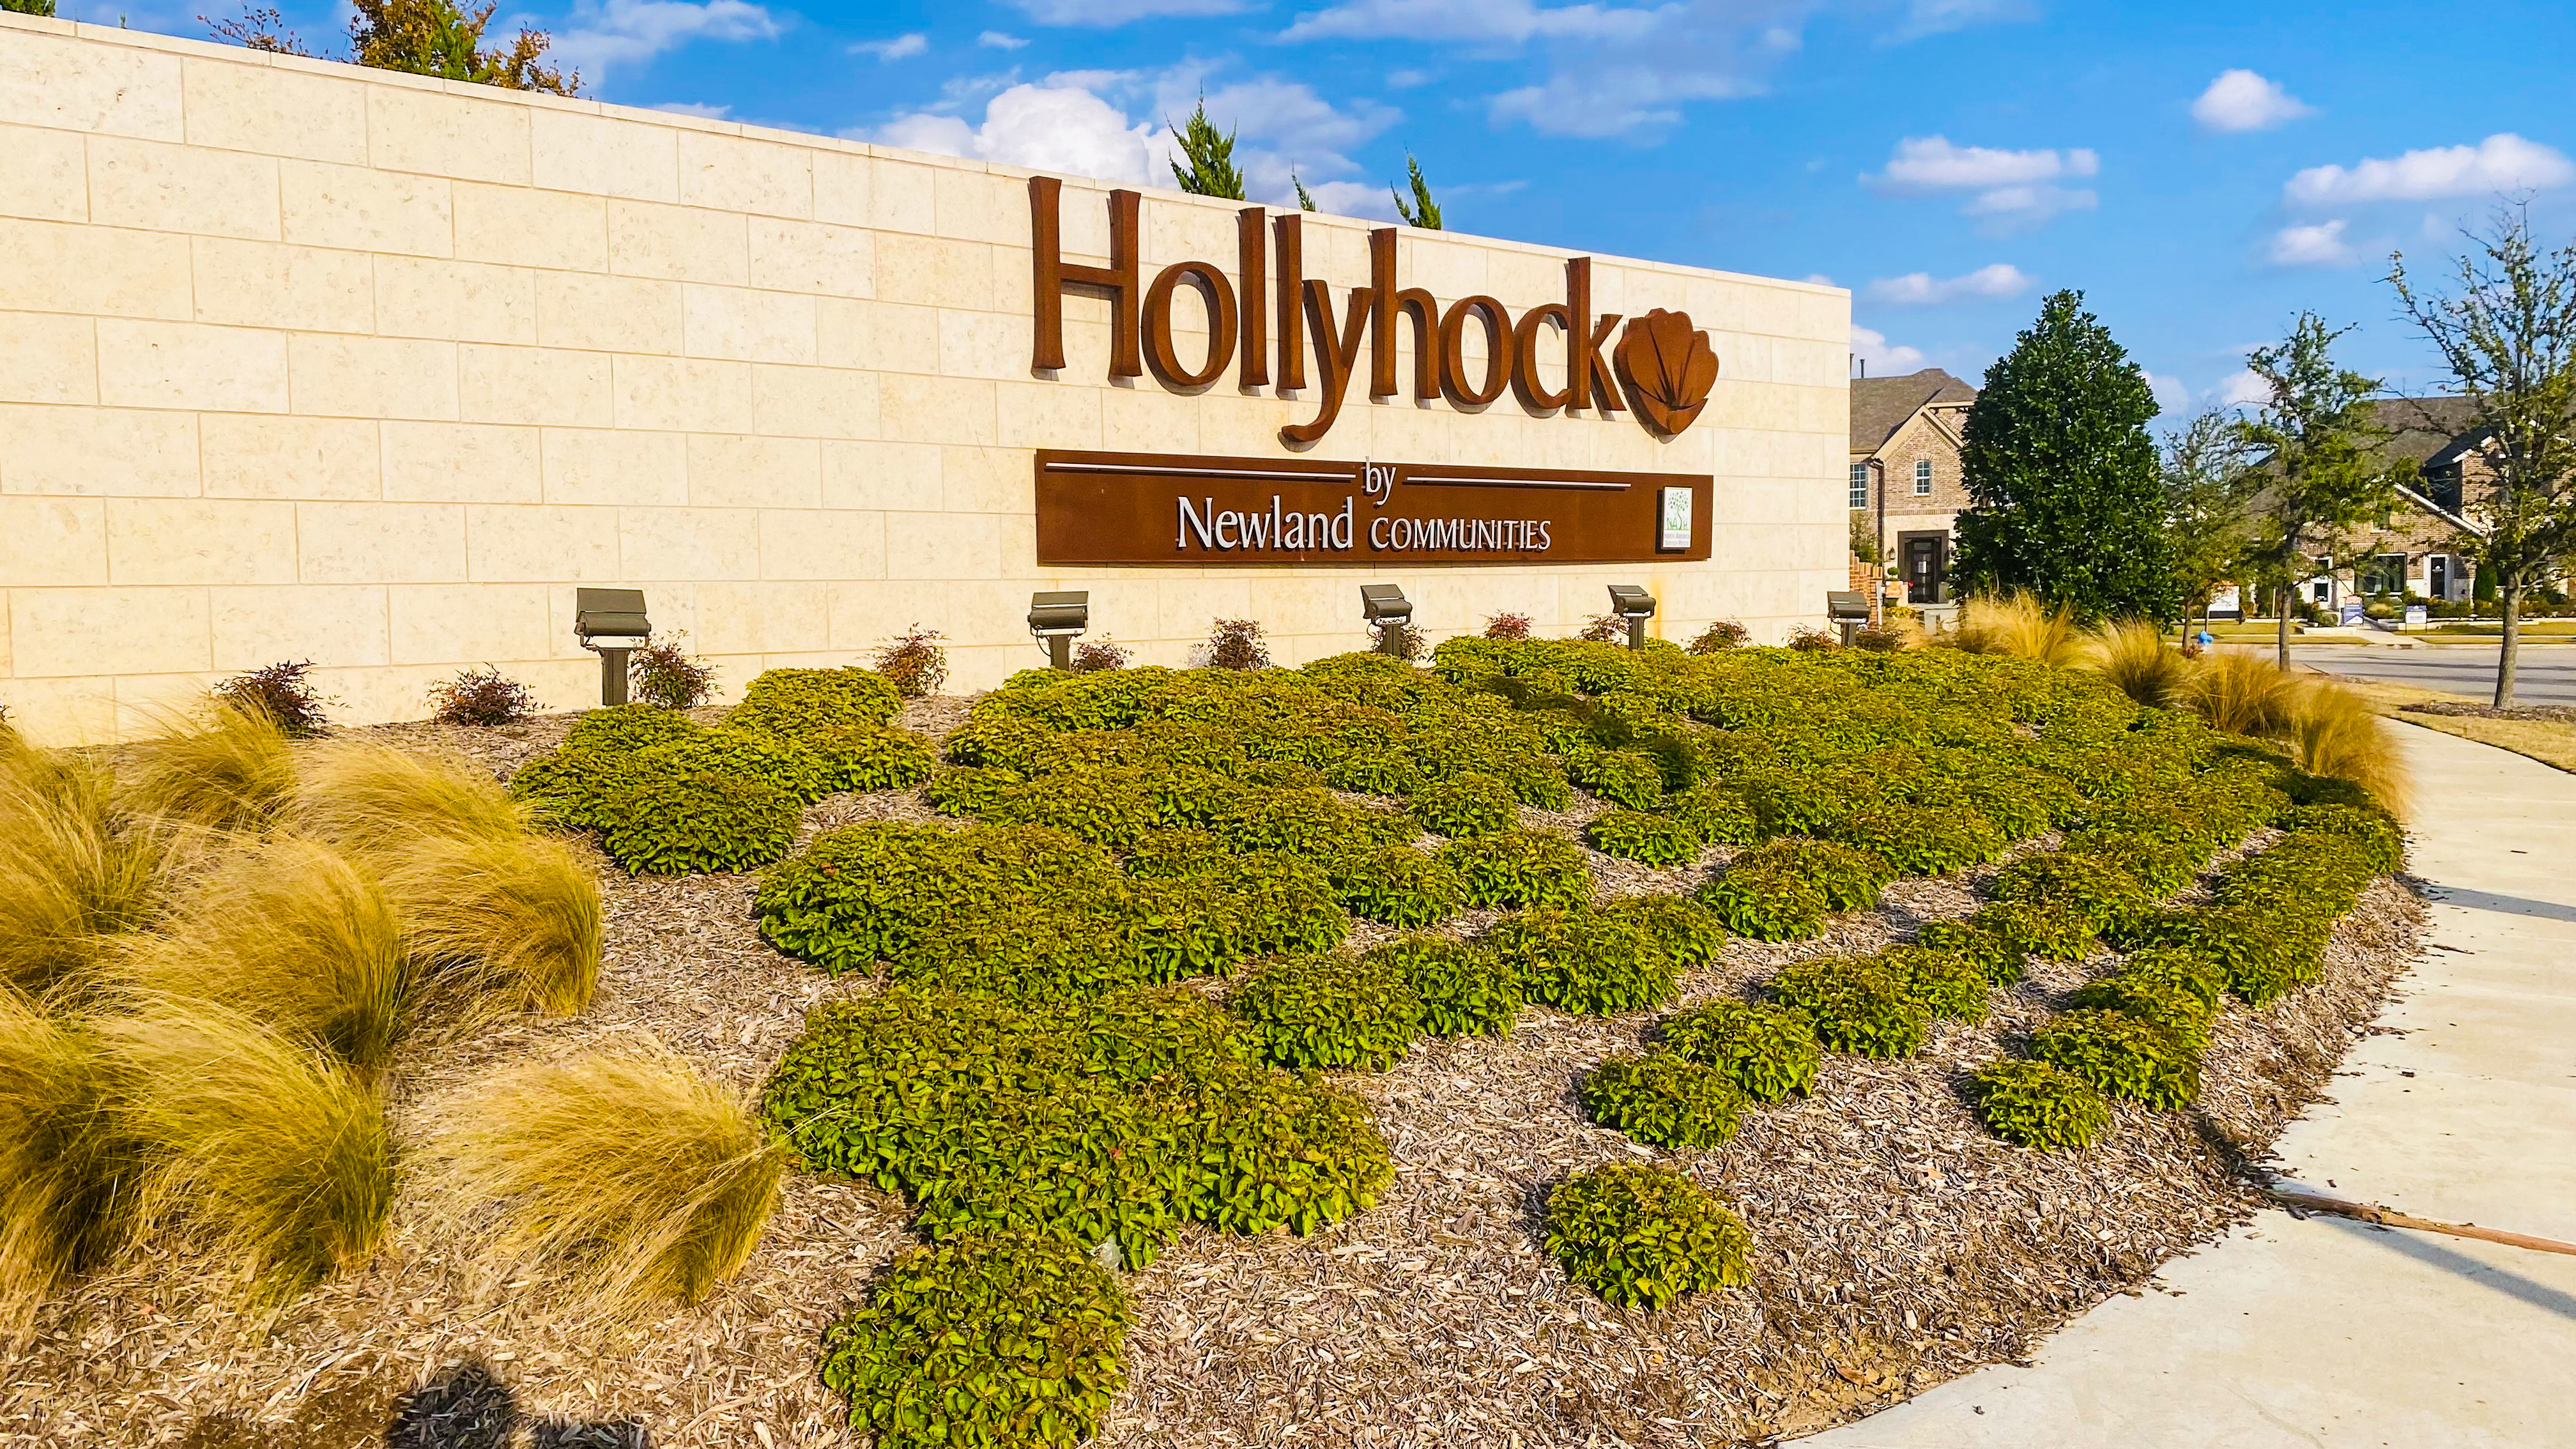 Homes for Sale in Hollyhock Frisco TX